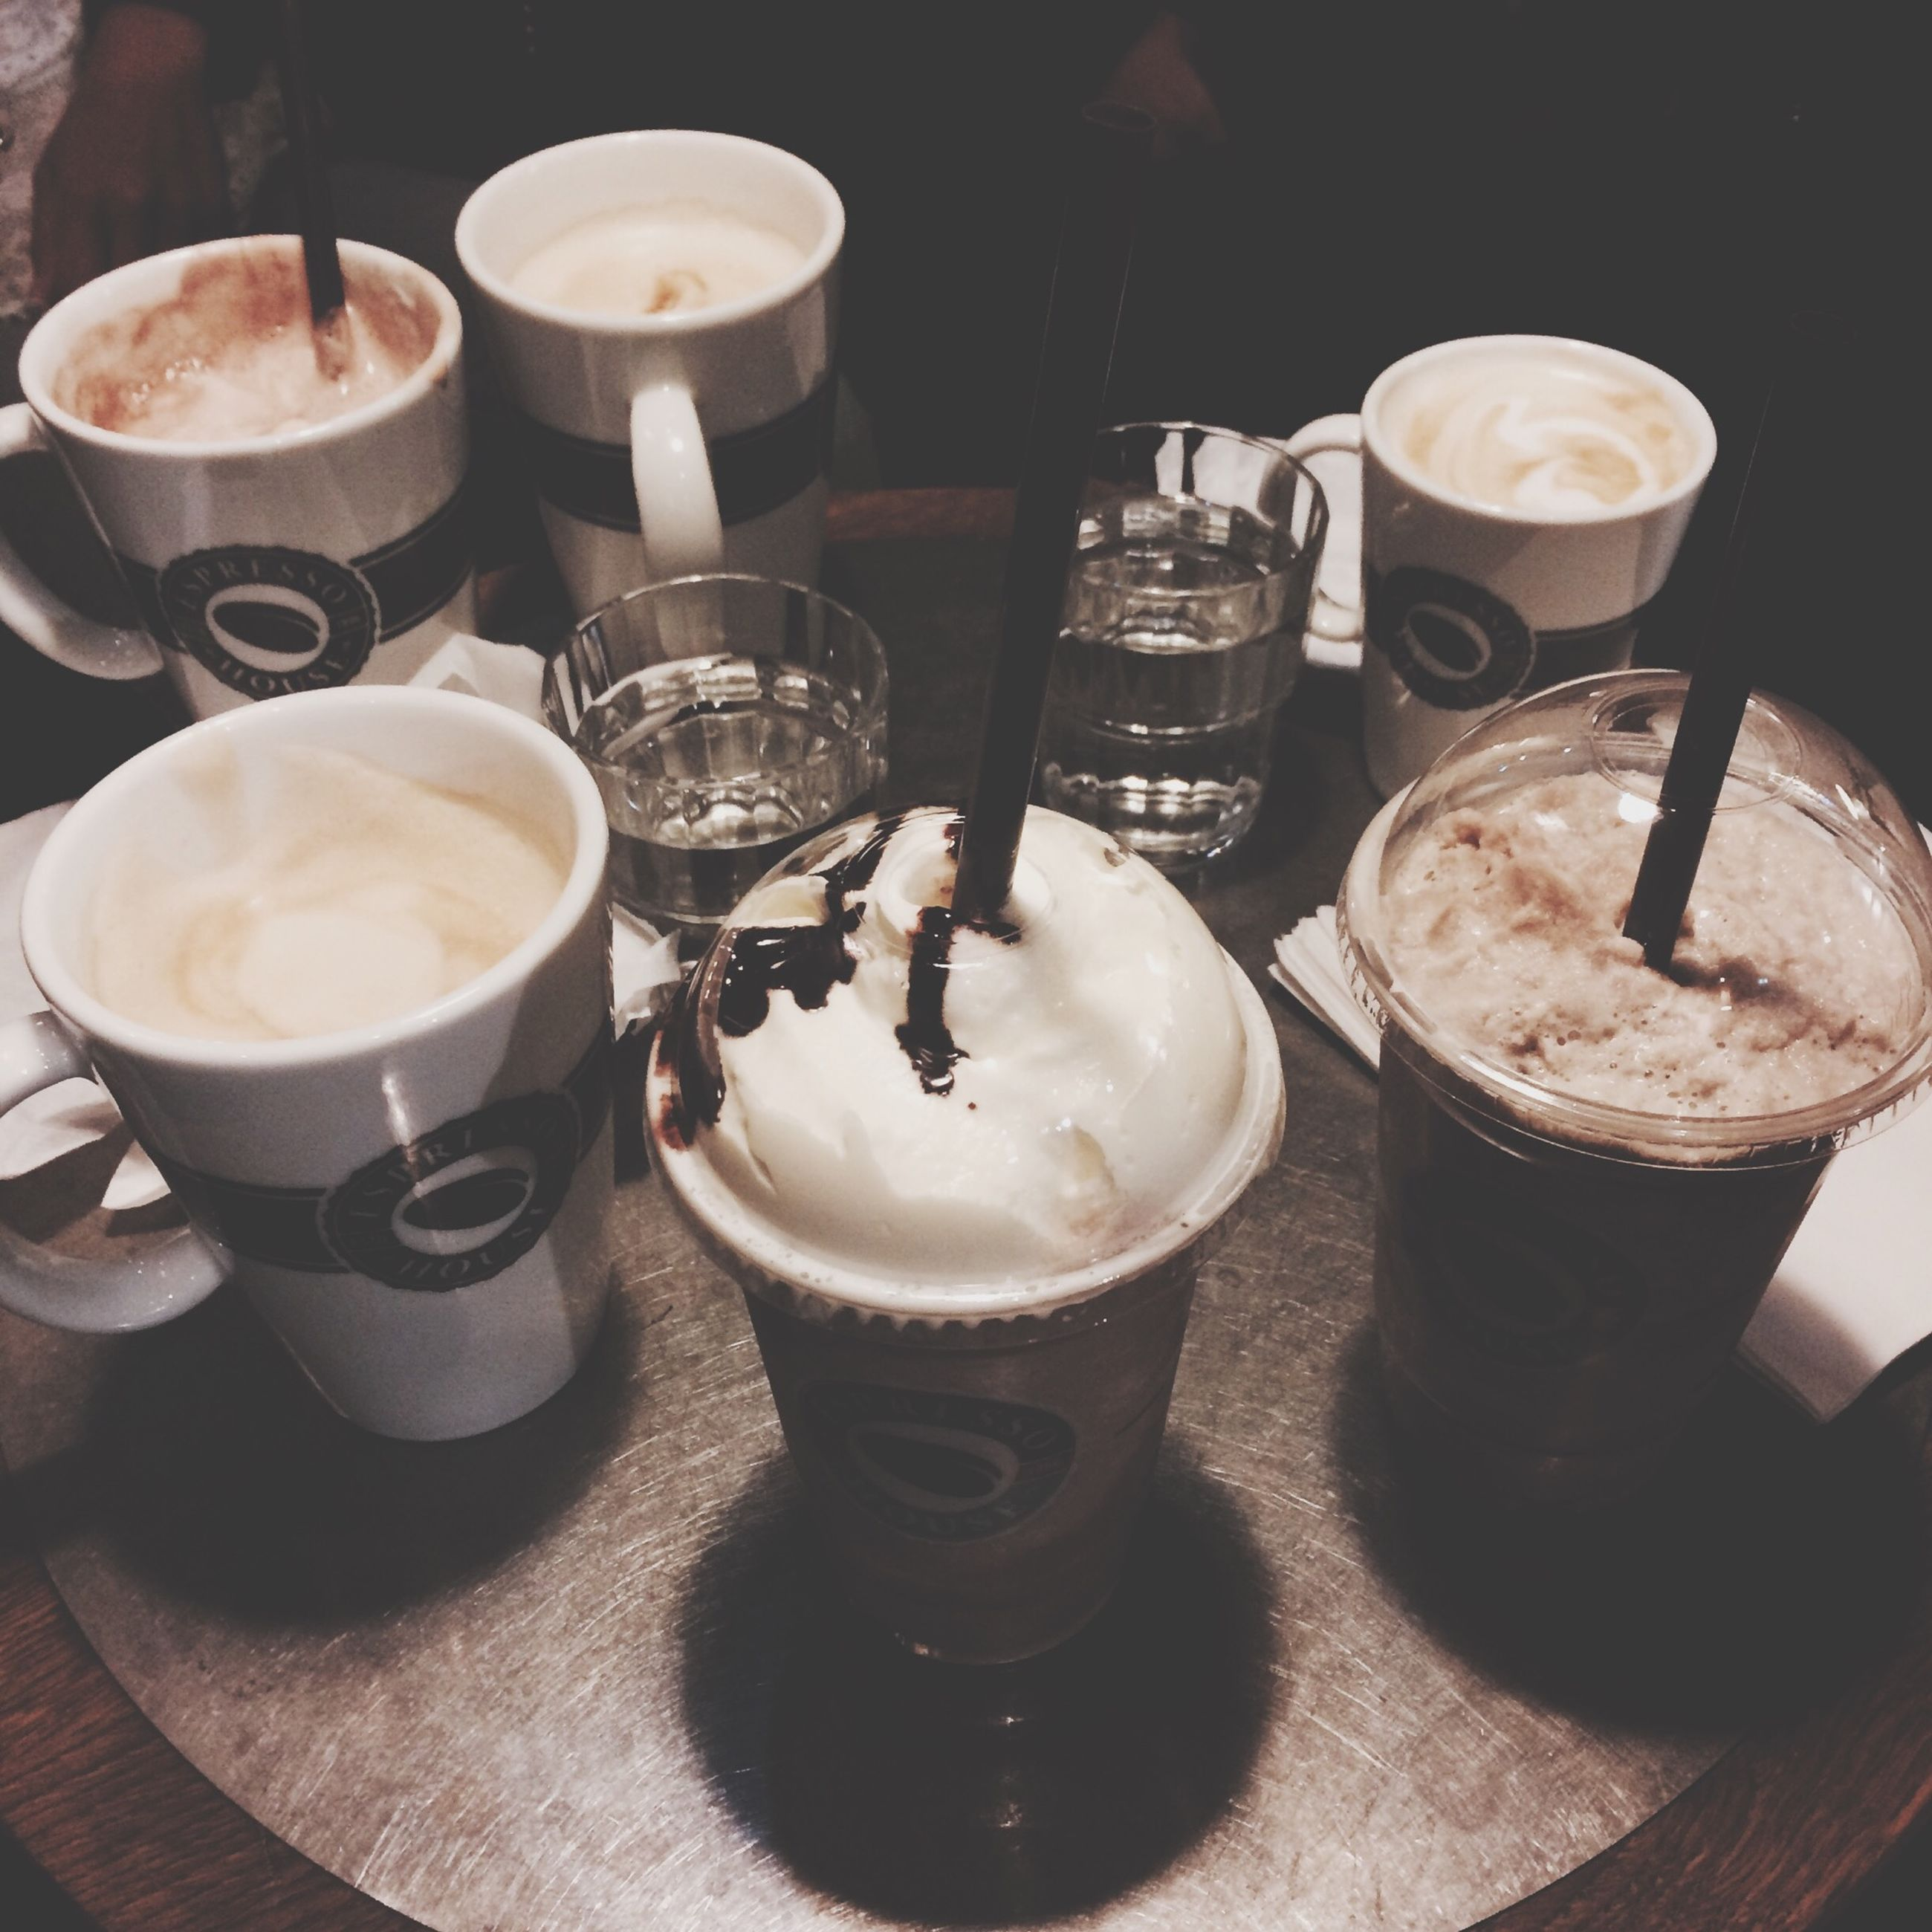 food and drink, drink, freshness, refreshment, indoors, table, coffee - drink, coffee cup, still life, saucer, frothy drink, drinking glass, food, coffee, close-up, cappuccino, beverage, cup, high angle view, spoon